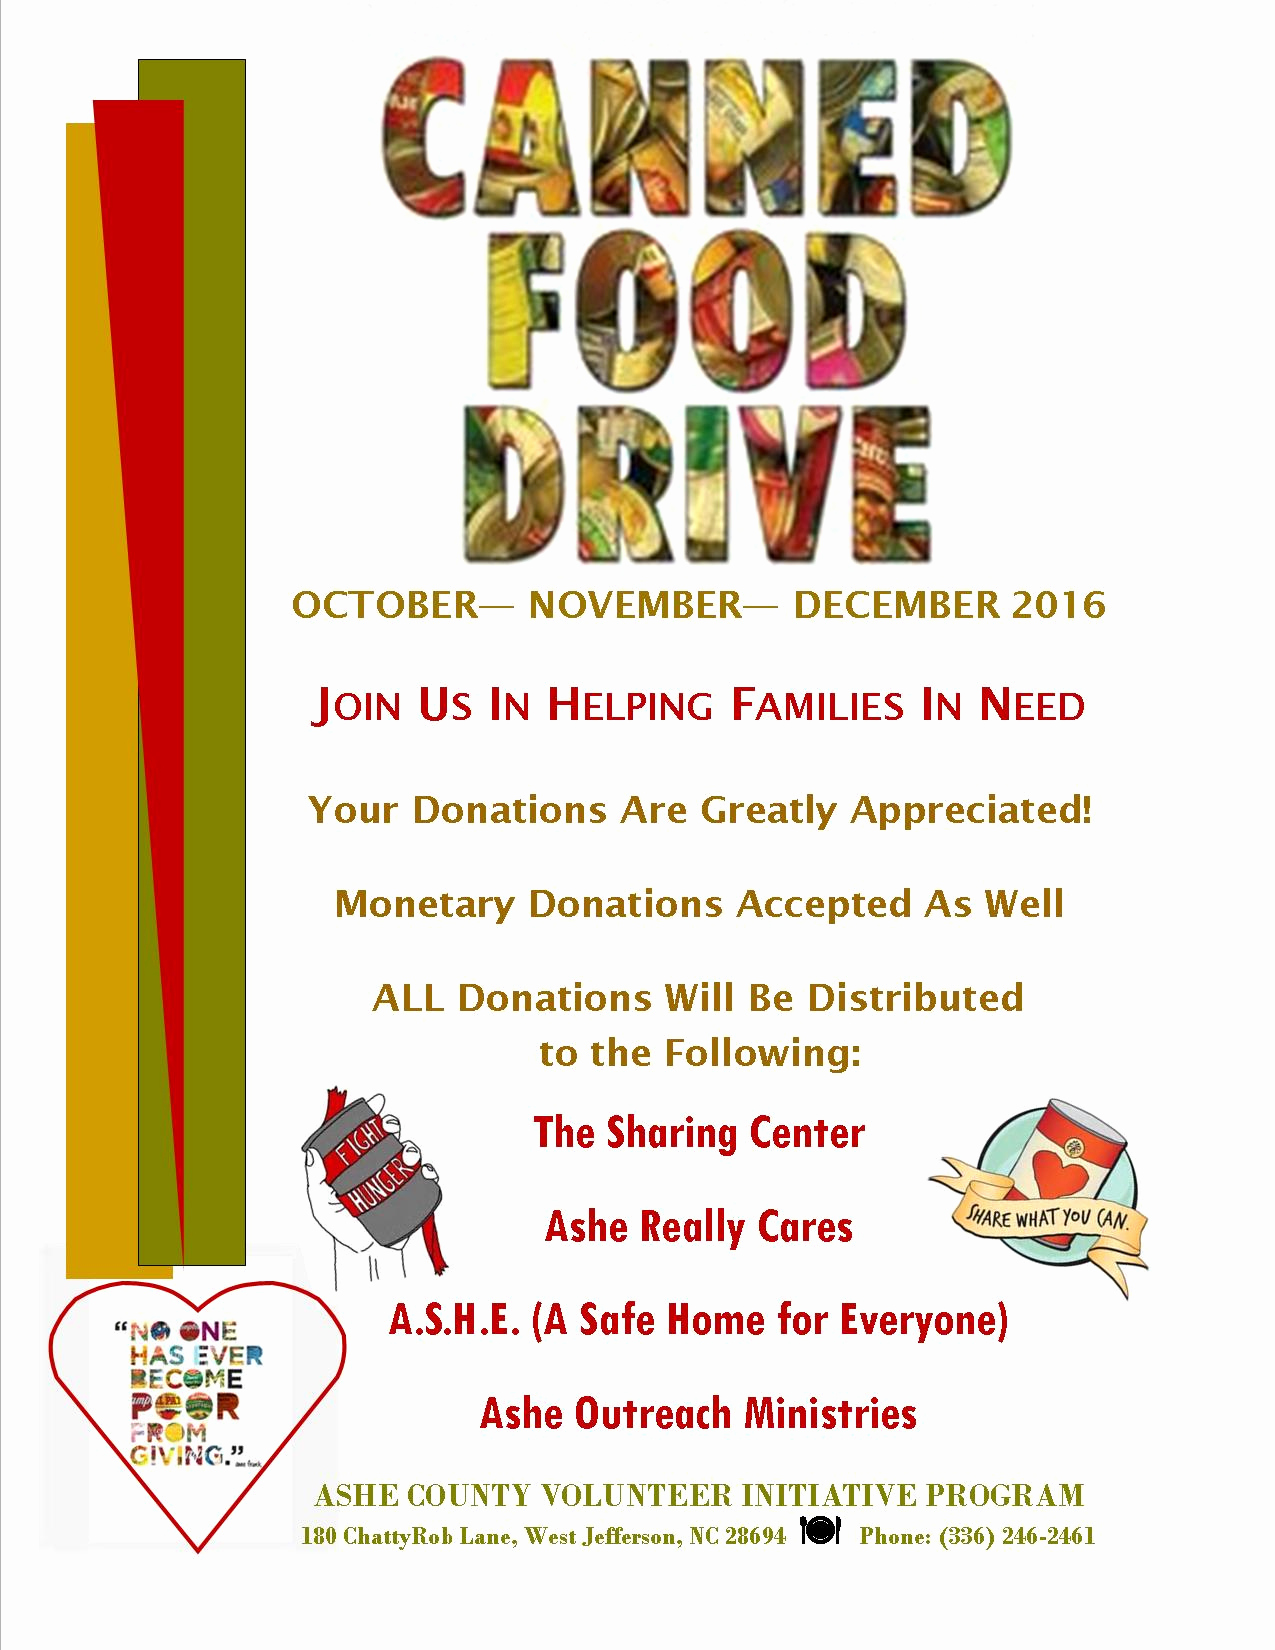 Canned Food Drive Flyer Best Of ashe Services for Aging ashe Nc